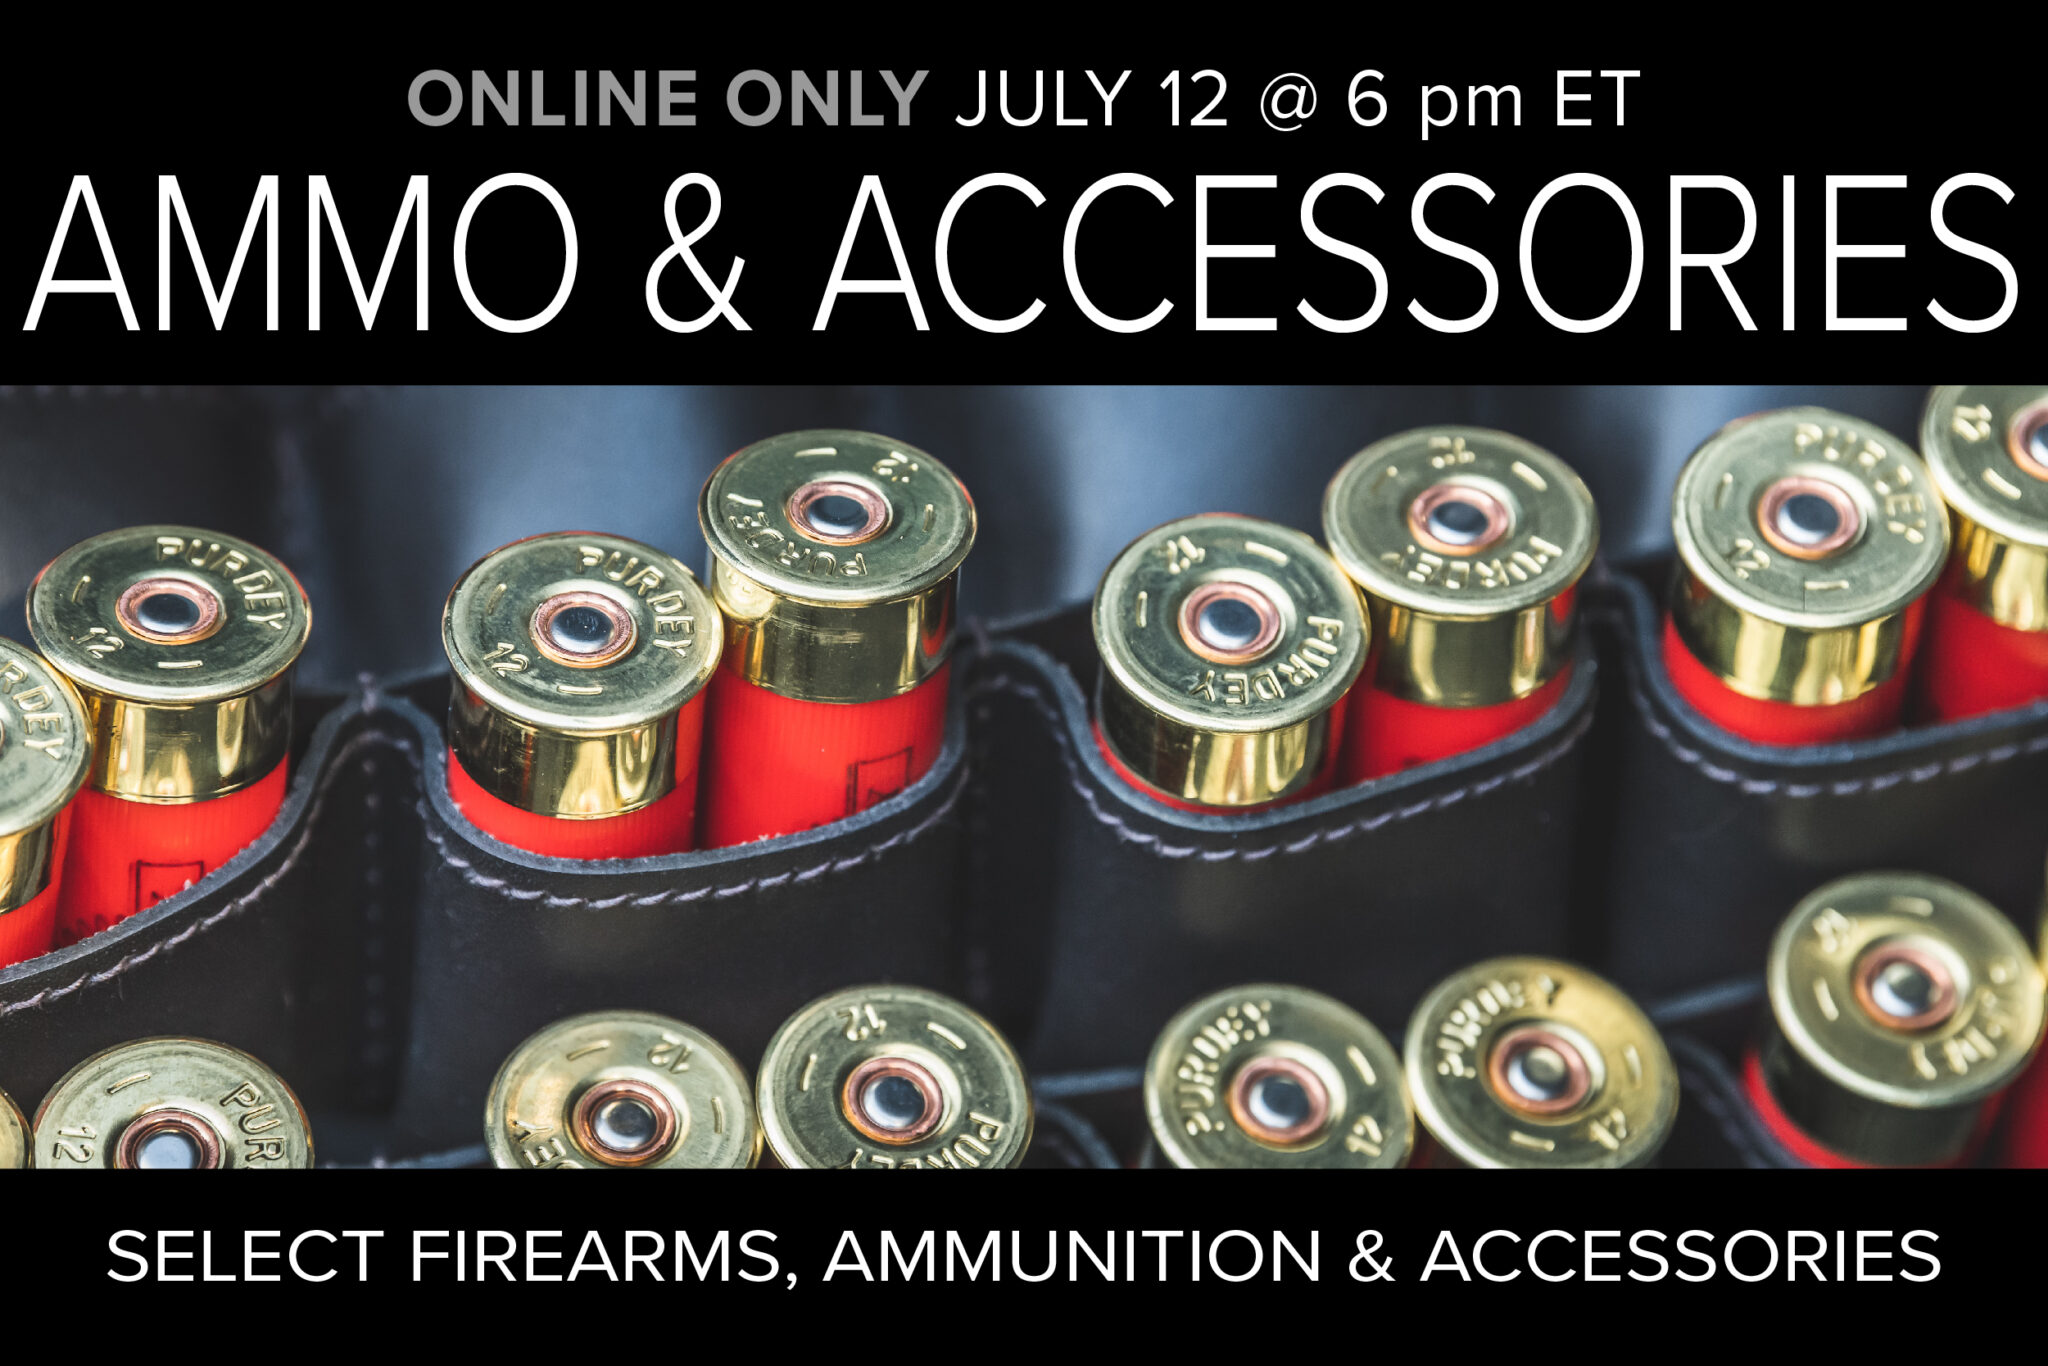 Ammo and Accessories Auction July 12 at 6 pm ET